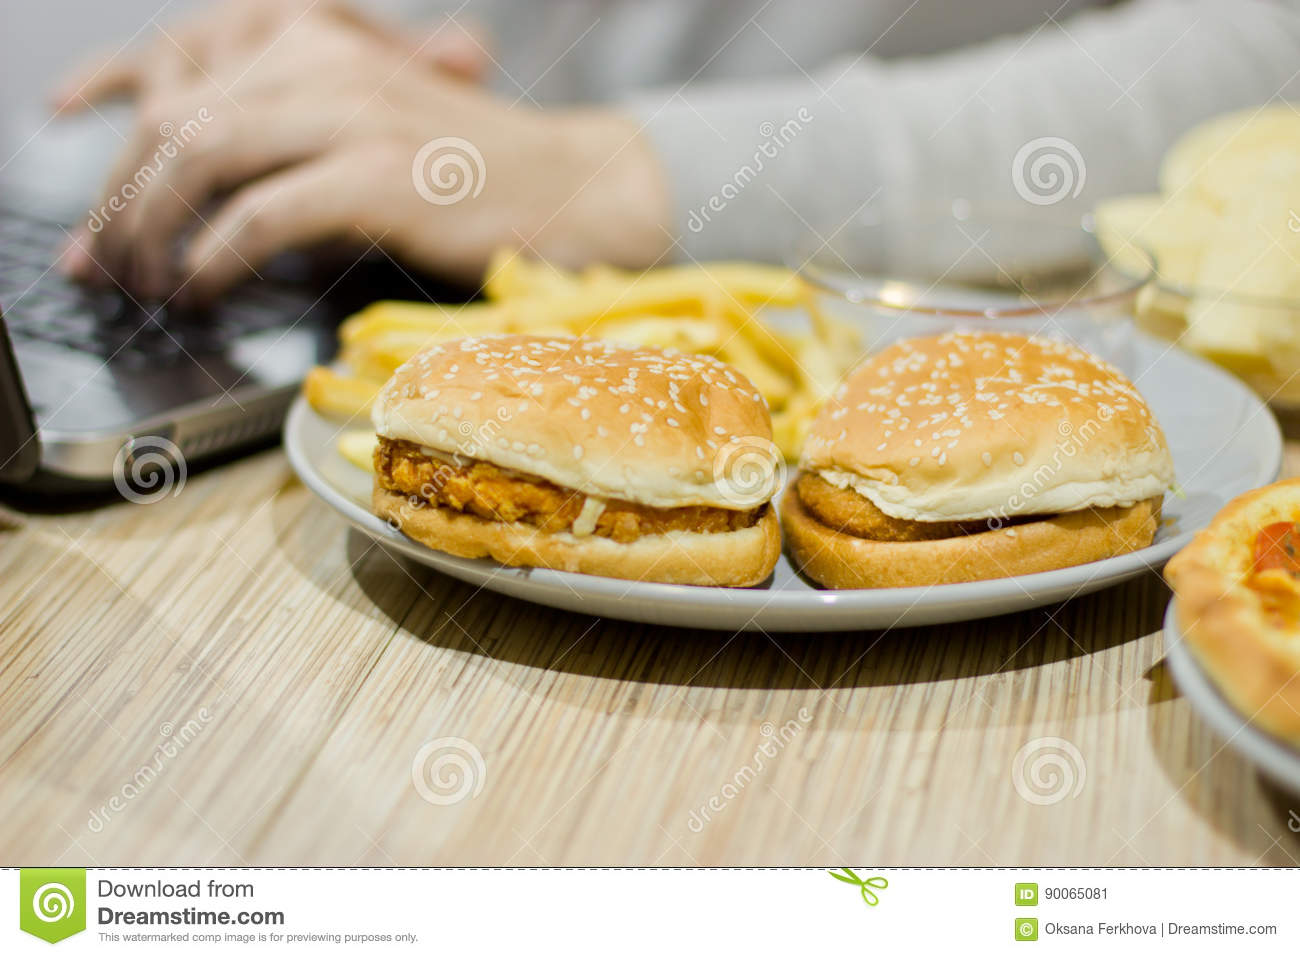 A man works at a computer and eats fast food. unhealthy food: Bu